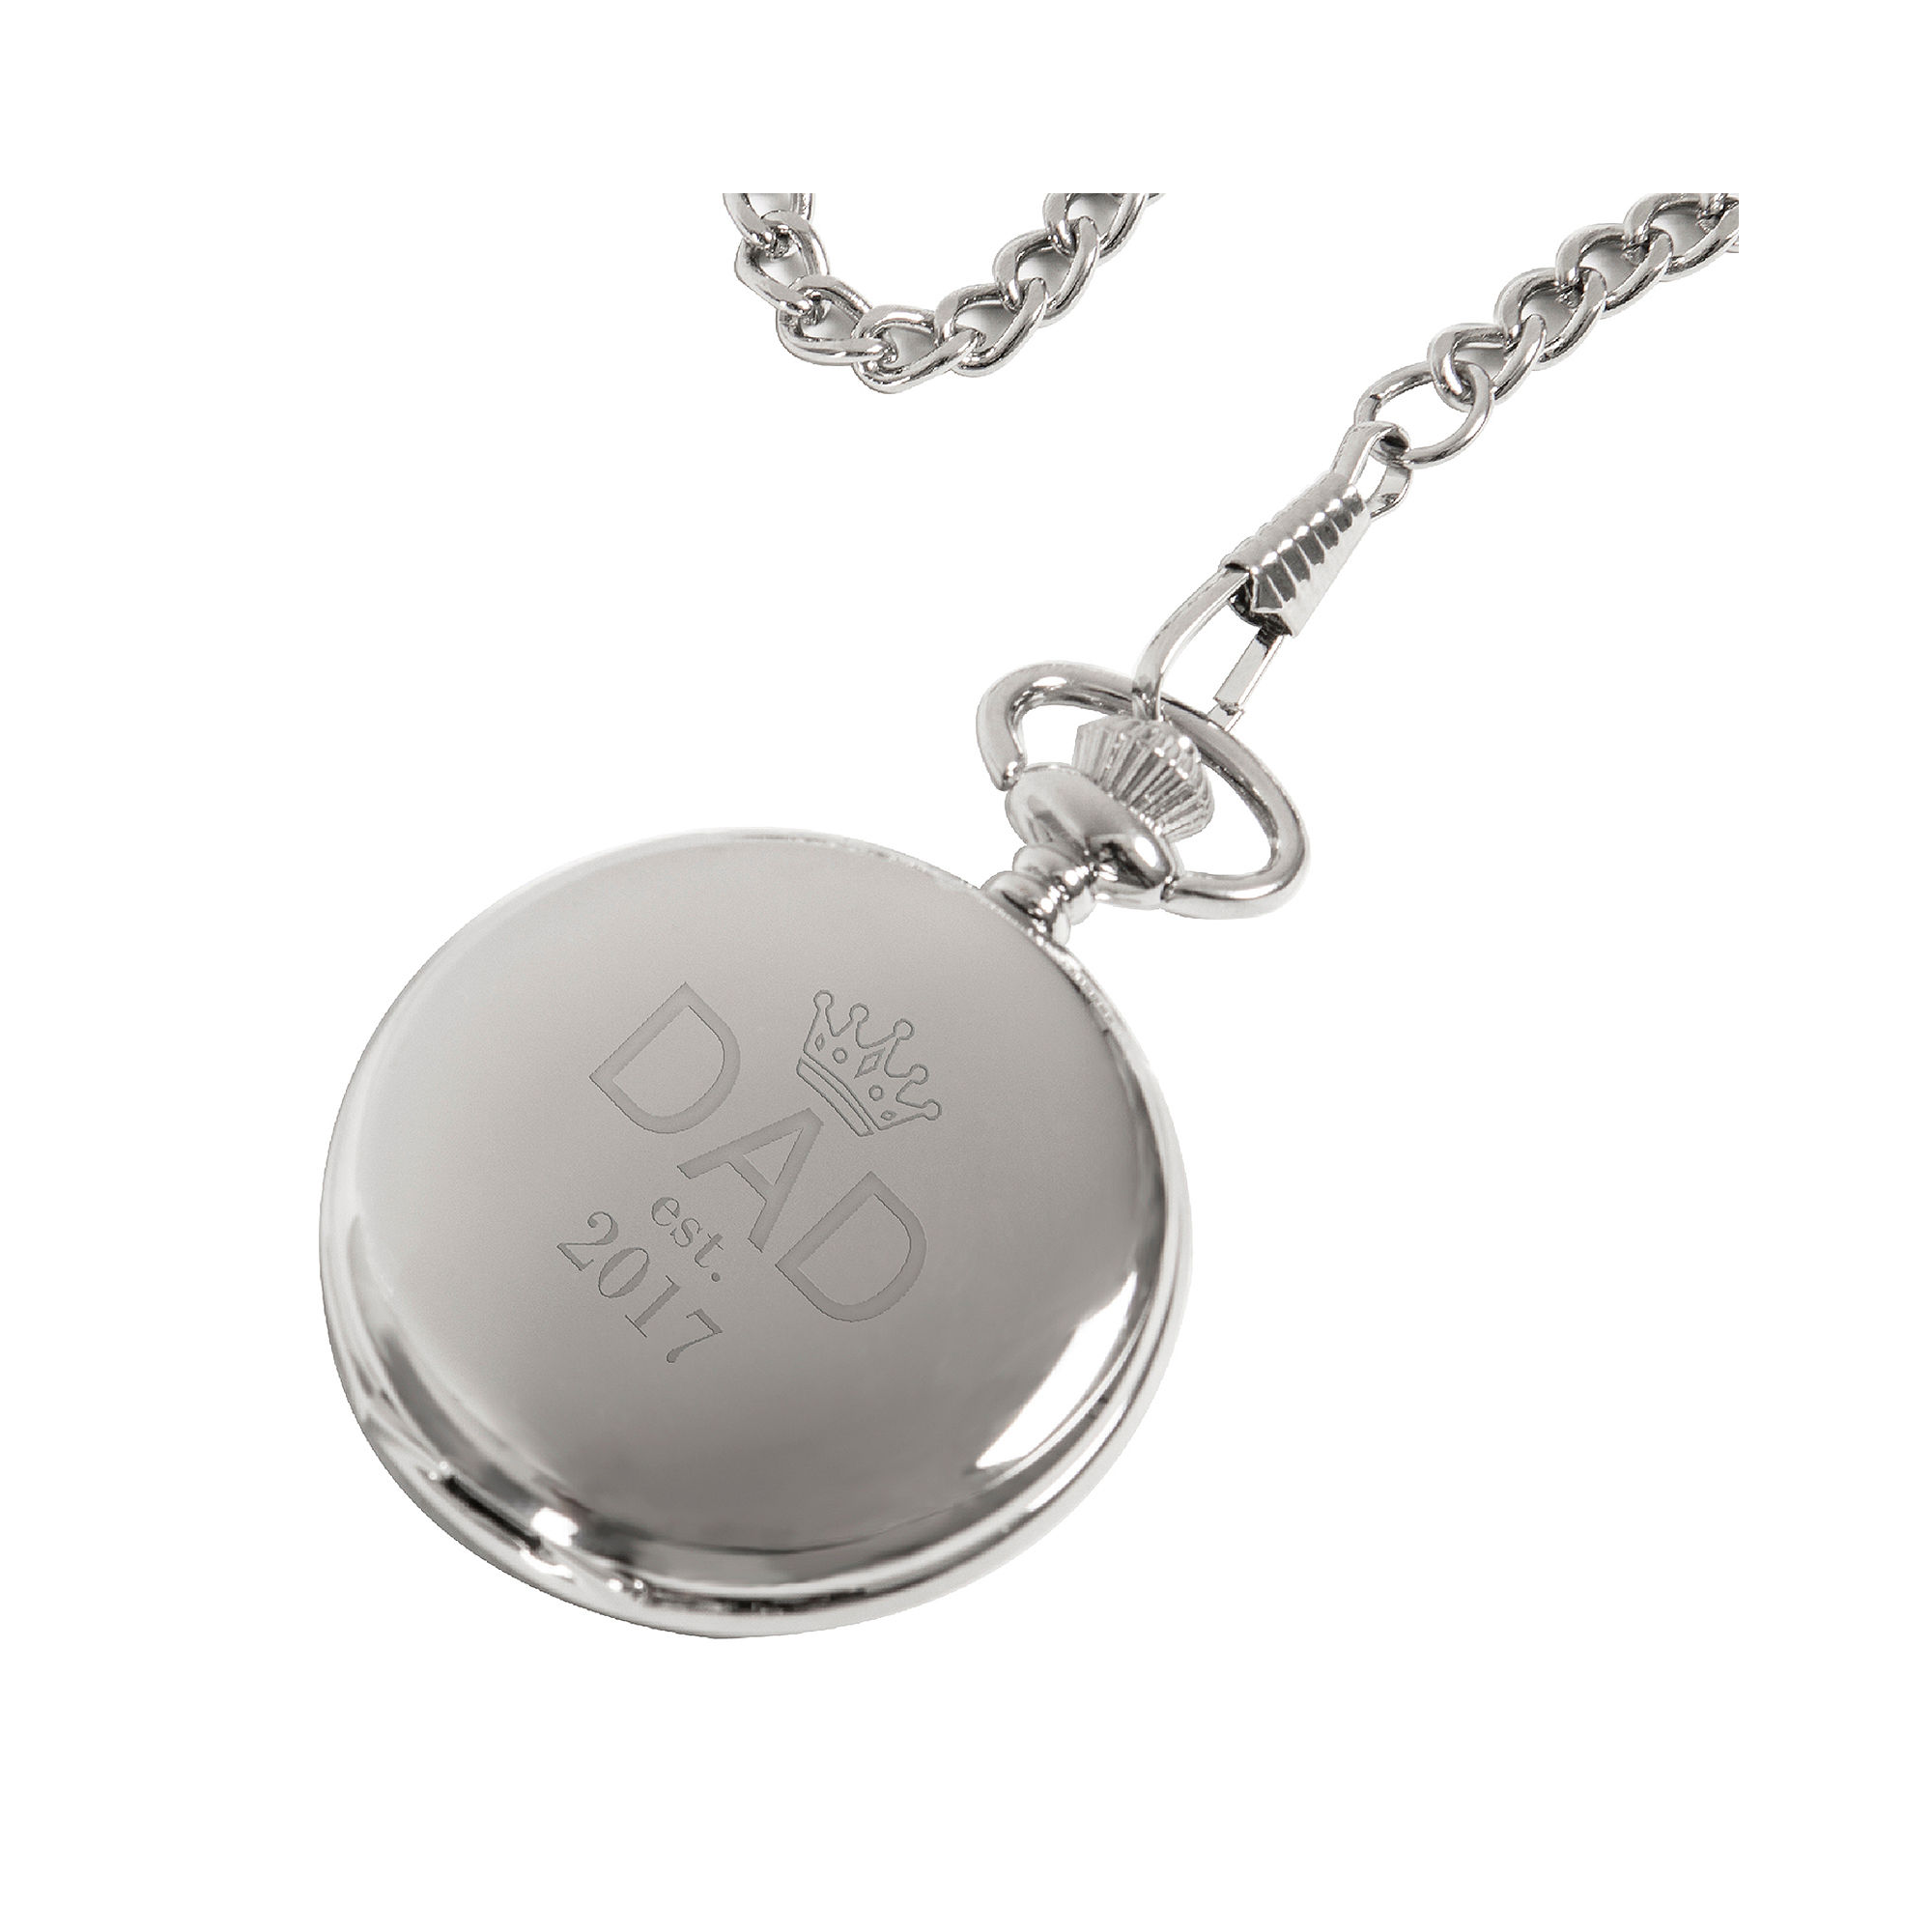 Personalized Fathers Day Silver-Plated Pocket Watch